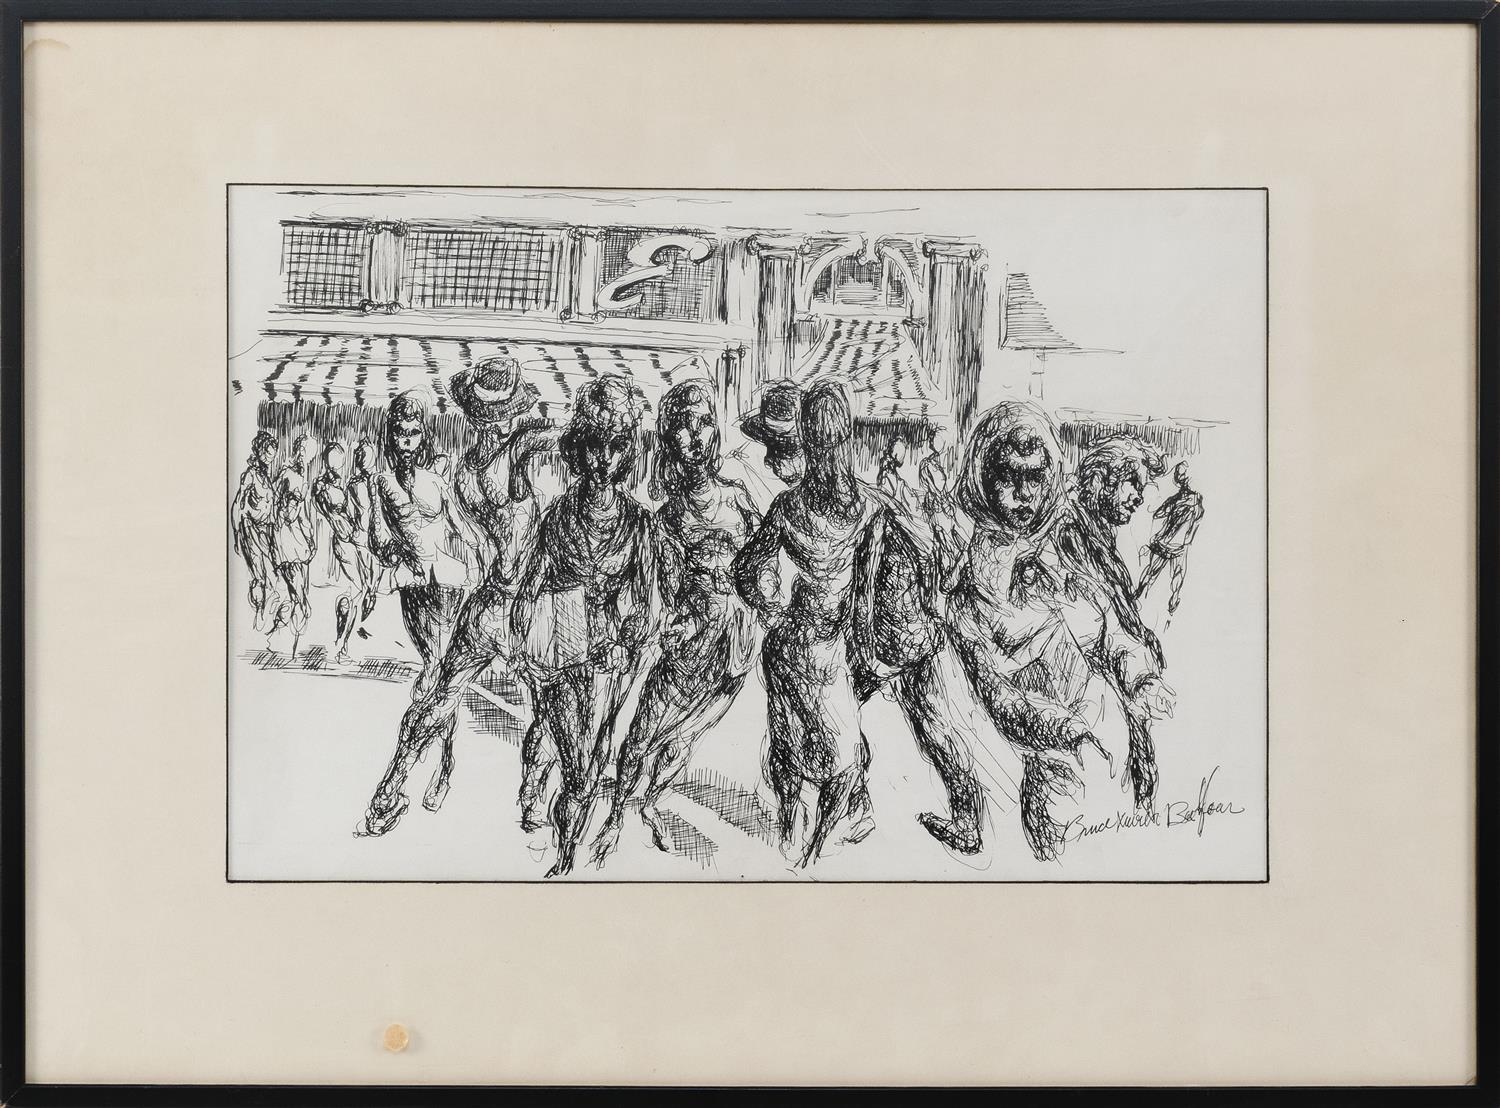 """BRUCE XAVIER BALFOUR, California, 20th Century, Figural street scene., Pen and ink on paper, 13"""" x 21"""" sight. Framed 22"""" x 30""""."""